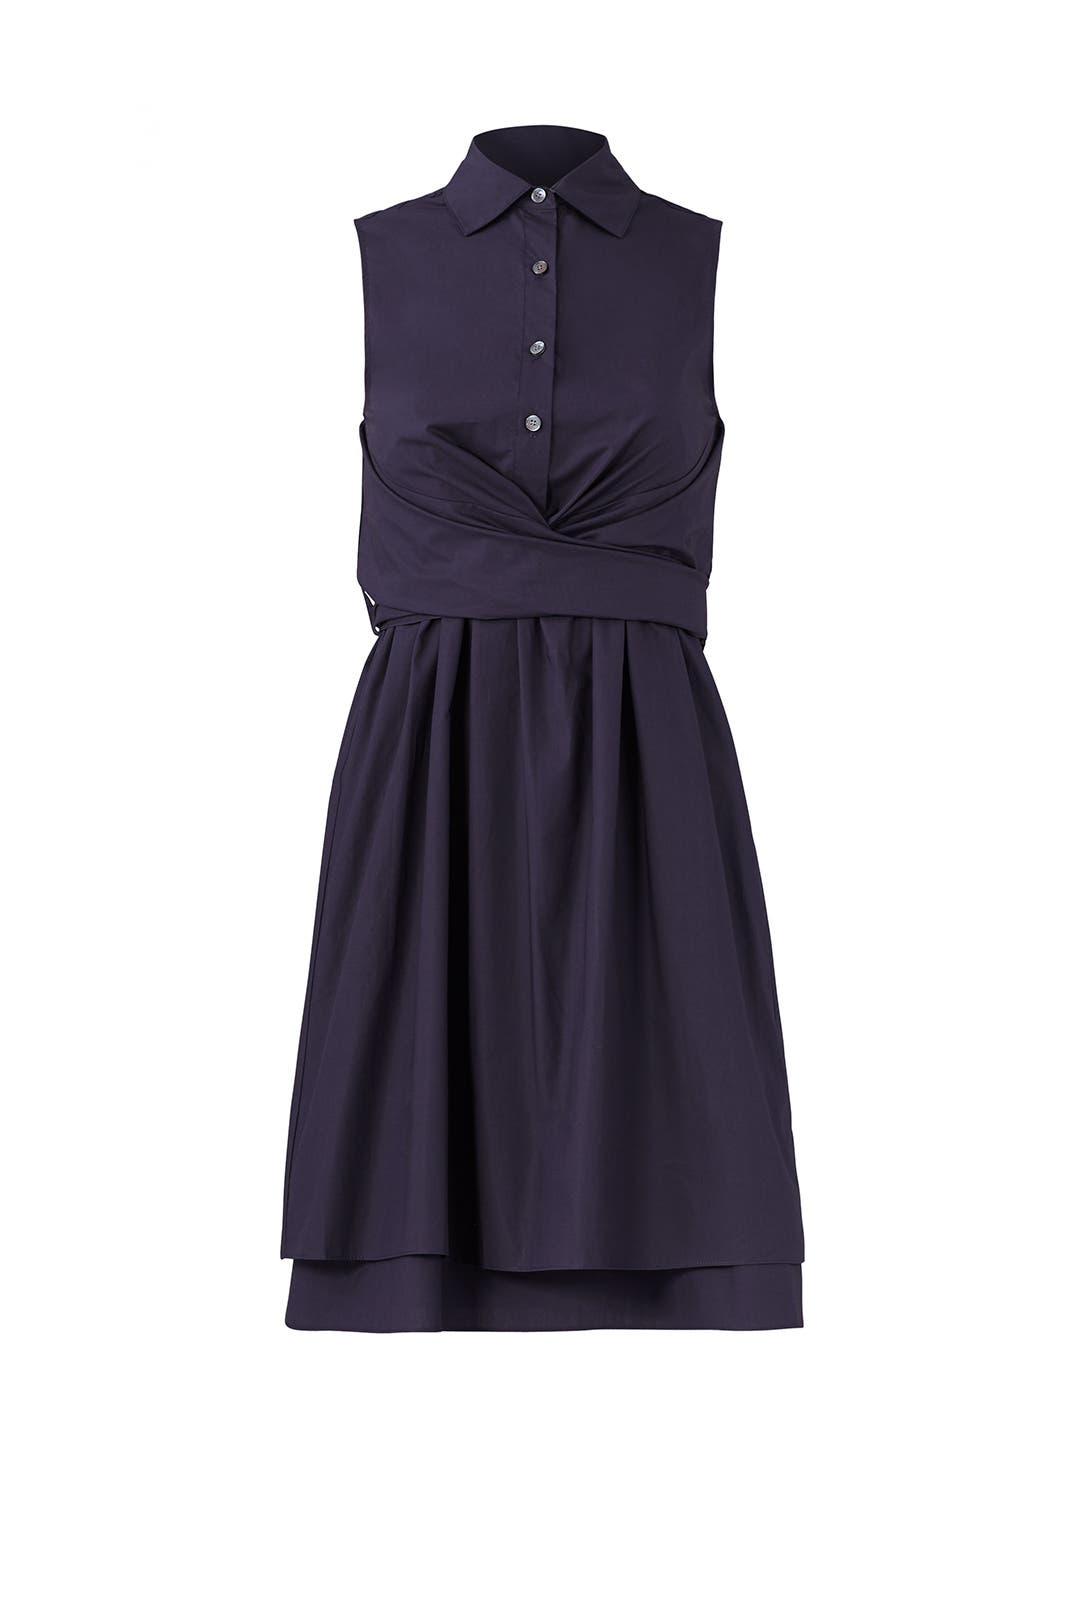 a99f95d2424a92 Navy Tie Ruffle Dress by Derek Lam 10 Crosby for  70